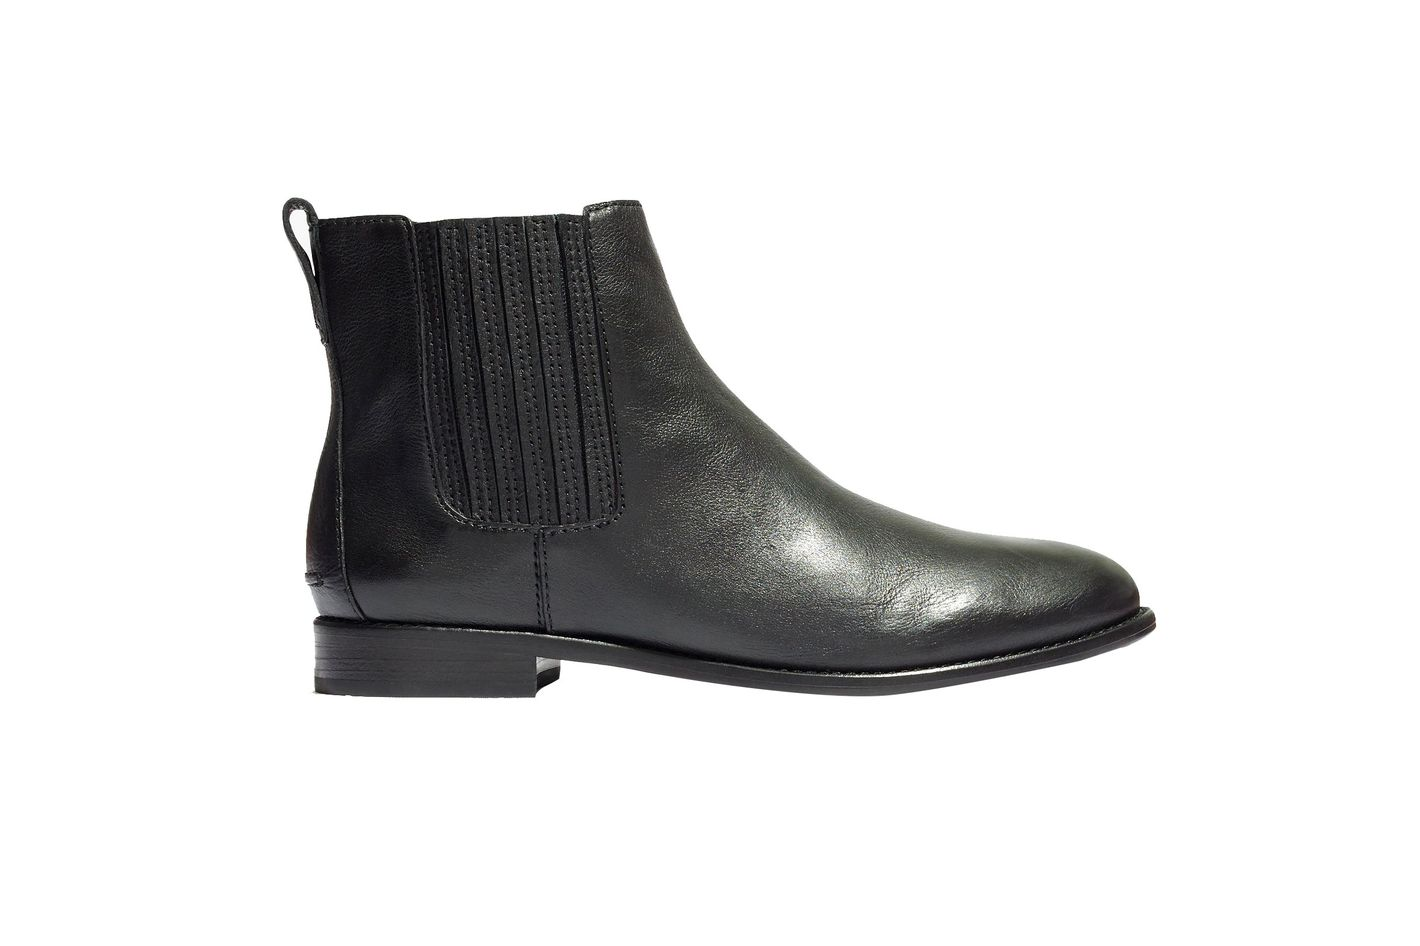 c79e7c21880 The Best Cheap Black Boots to Buy Now